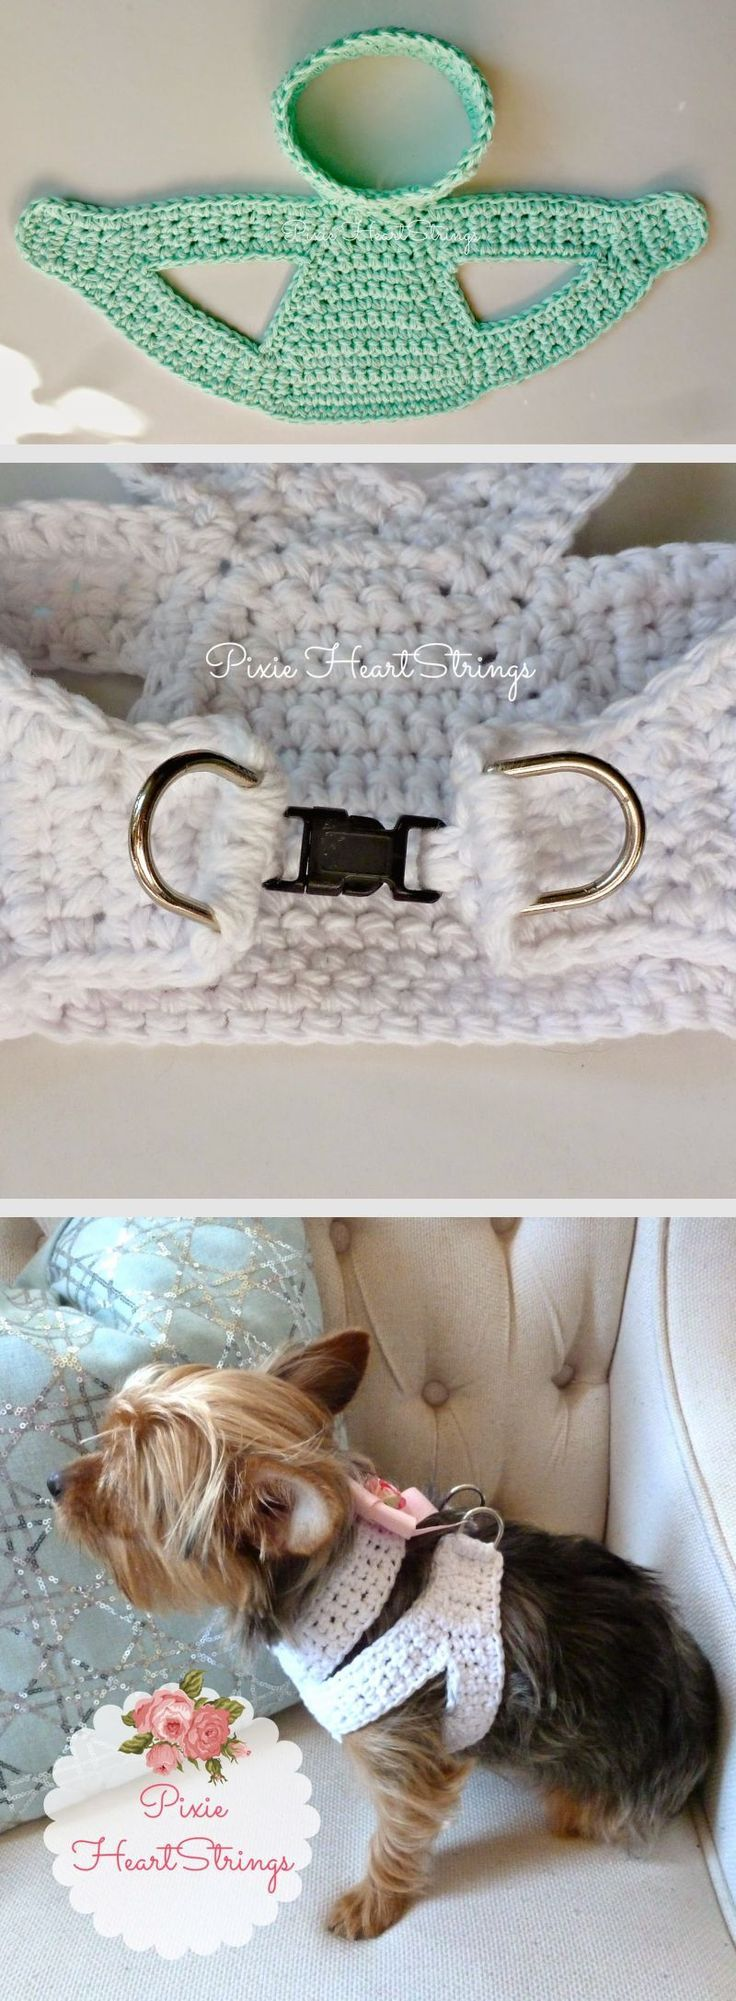 Extra small pet harness free pattern with photos by pixie dog extra small pet harness free pattern with photos by pixie dog pictured weighs bankloansurffo Images